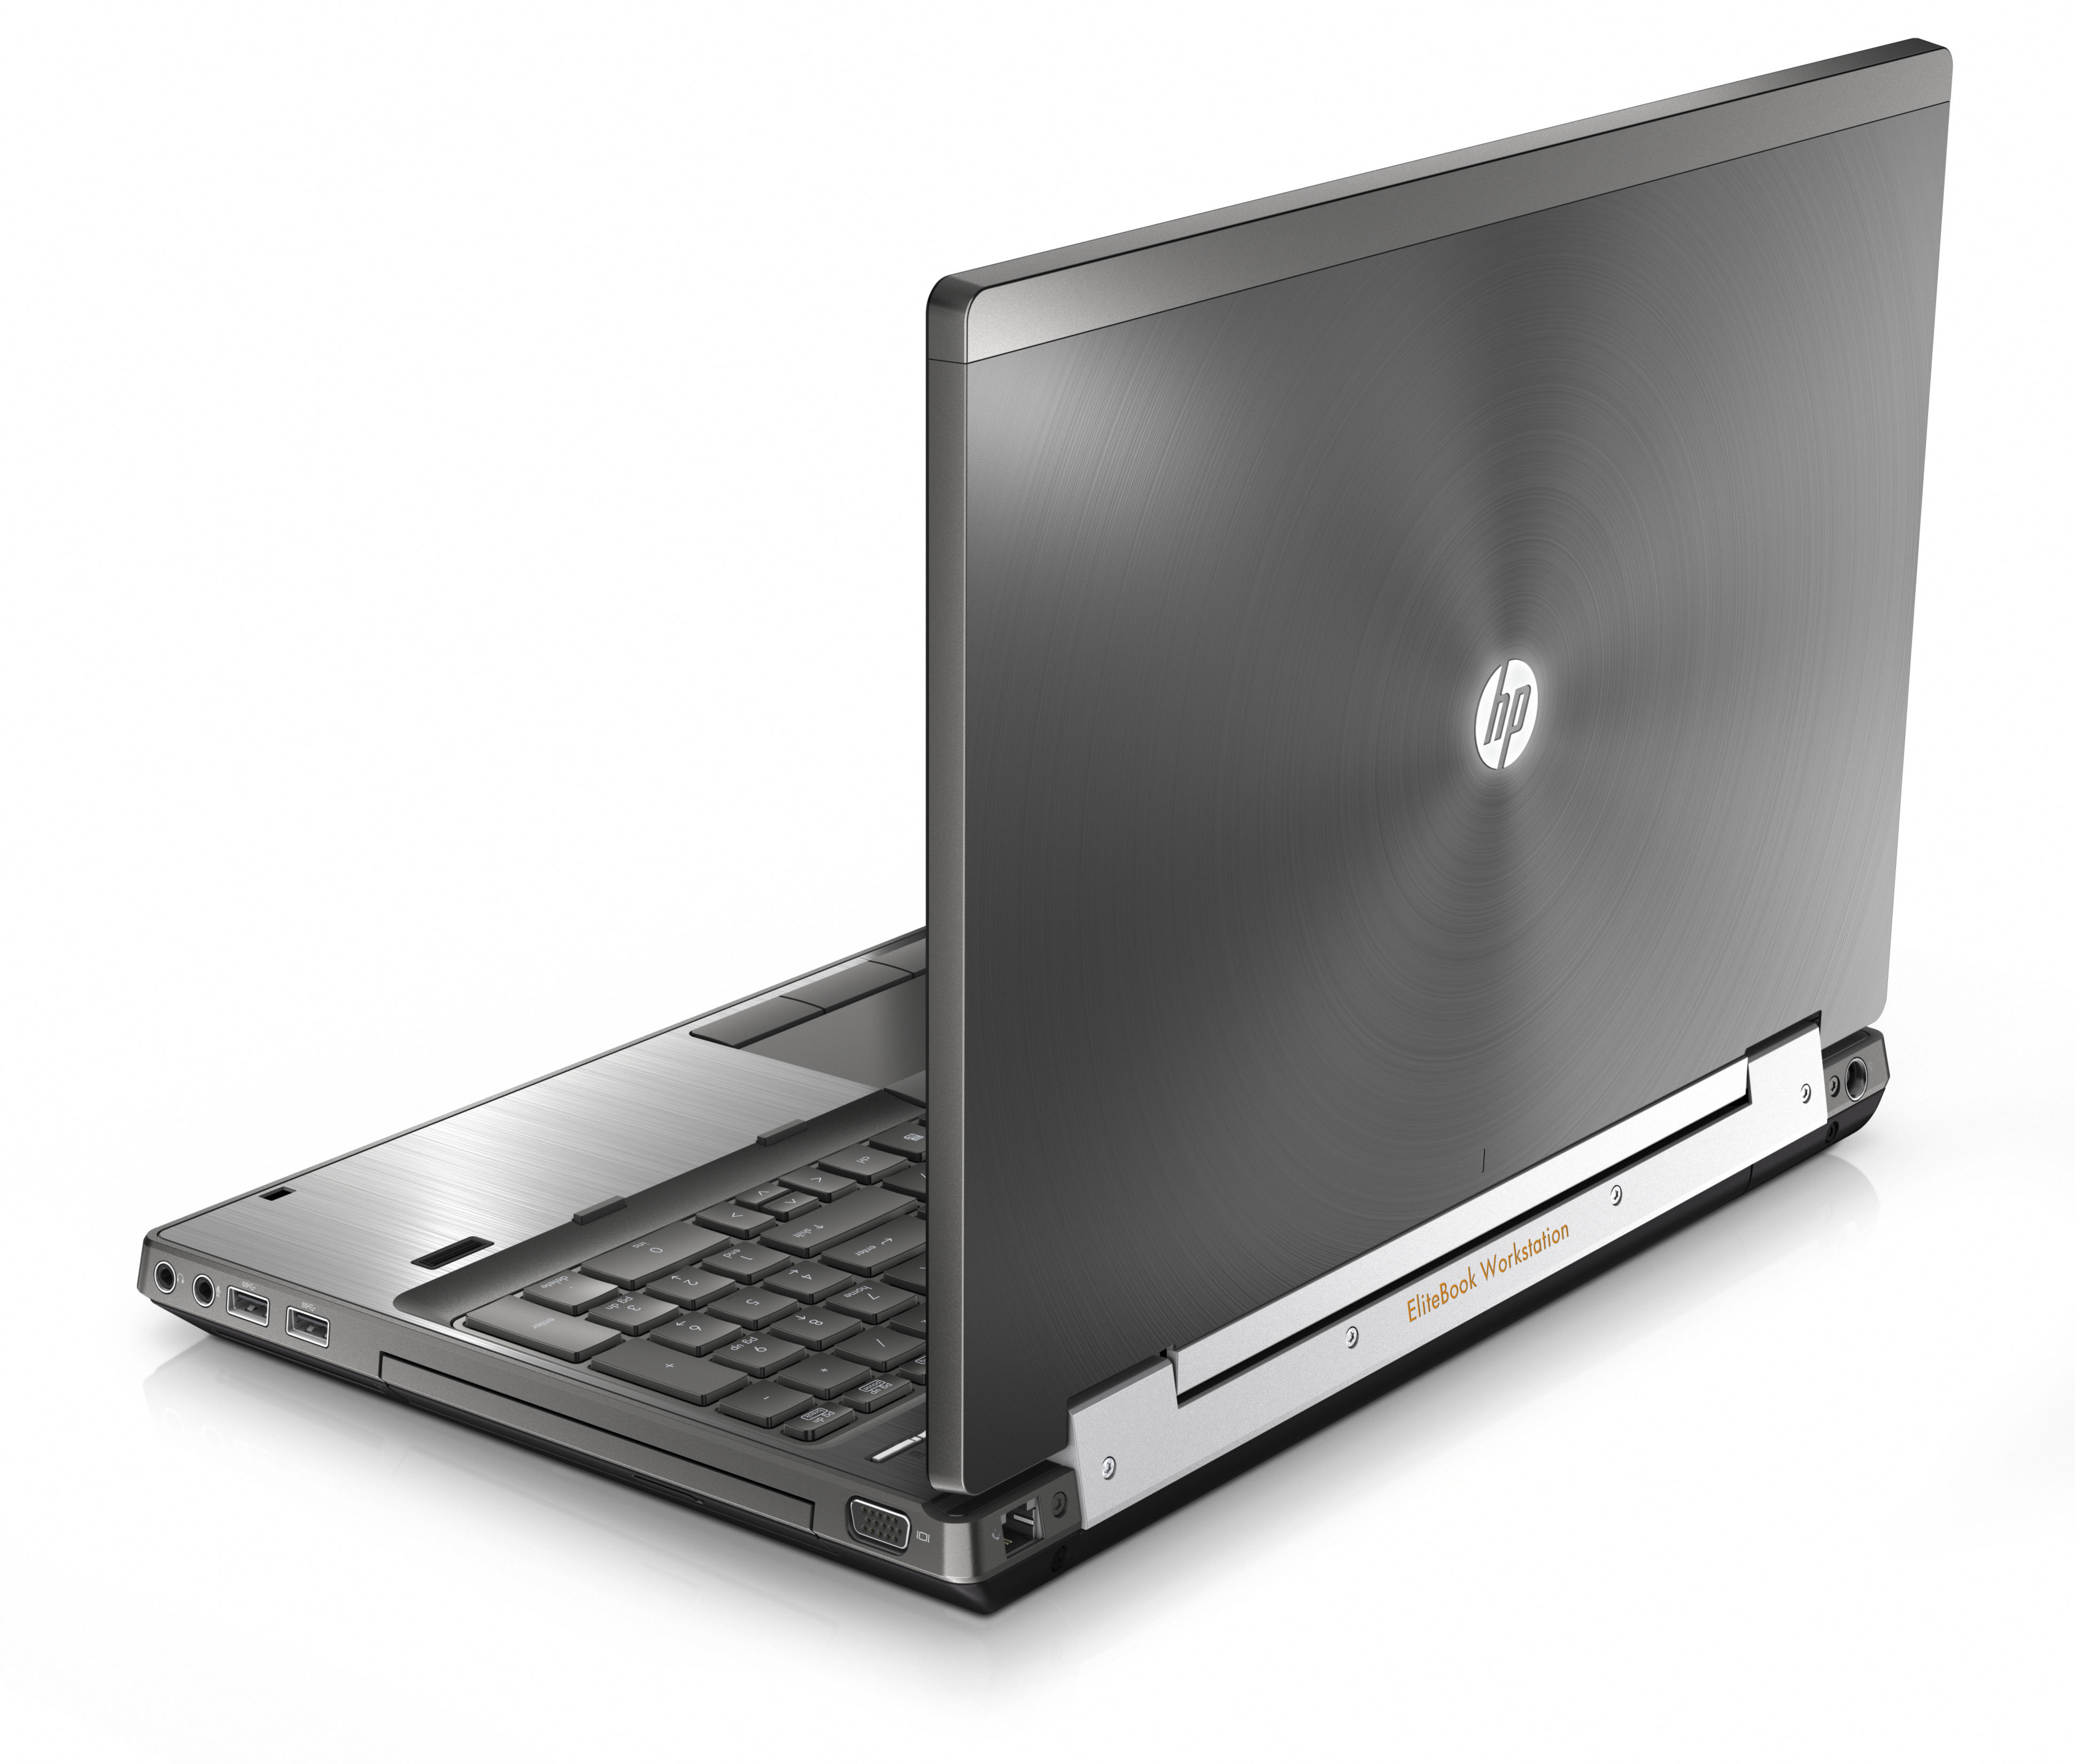 EliteBook 8560w Rear Right Open